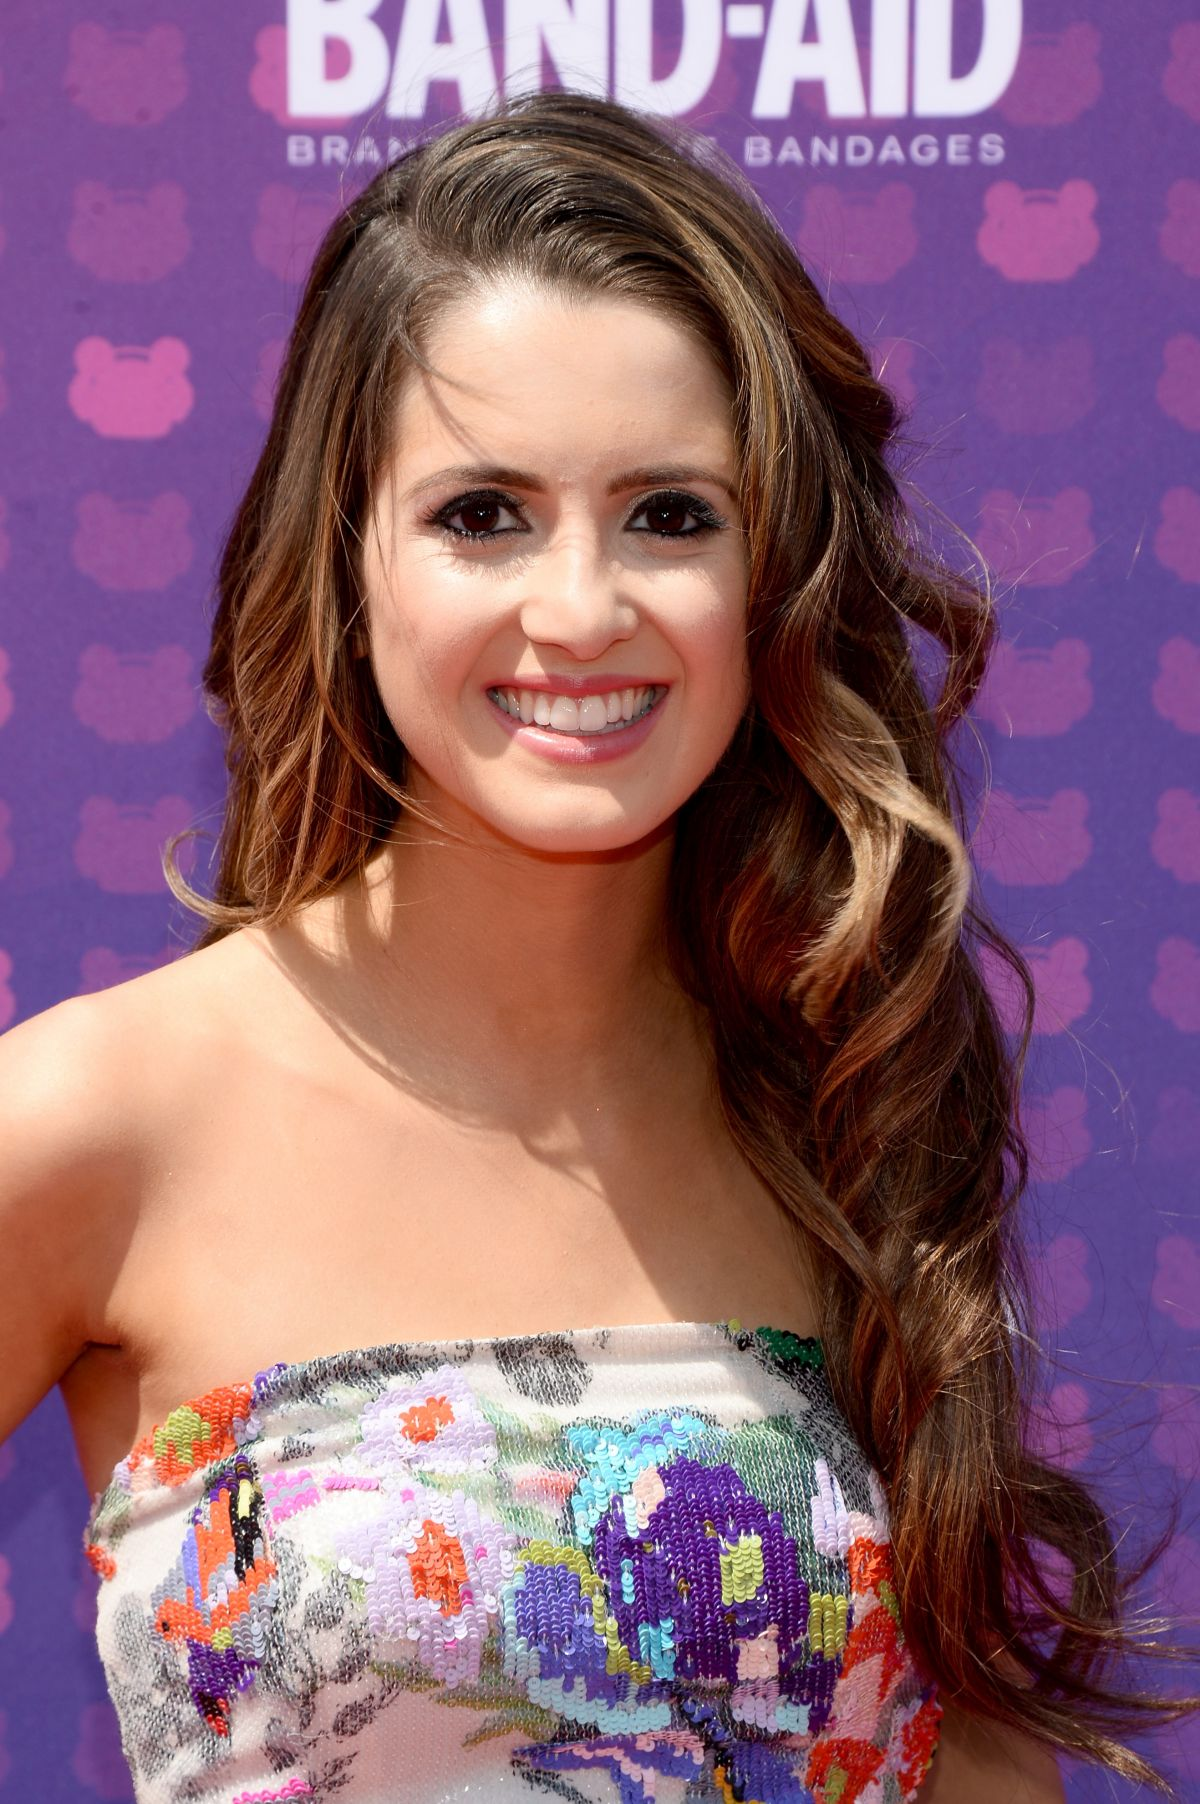 LAURA MARANO at 2016 Radio Disney Music Awards in Los Angeles 04/30/2016